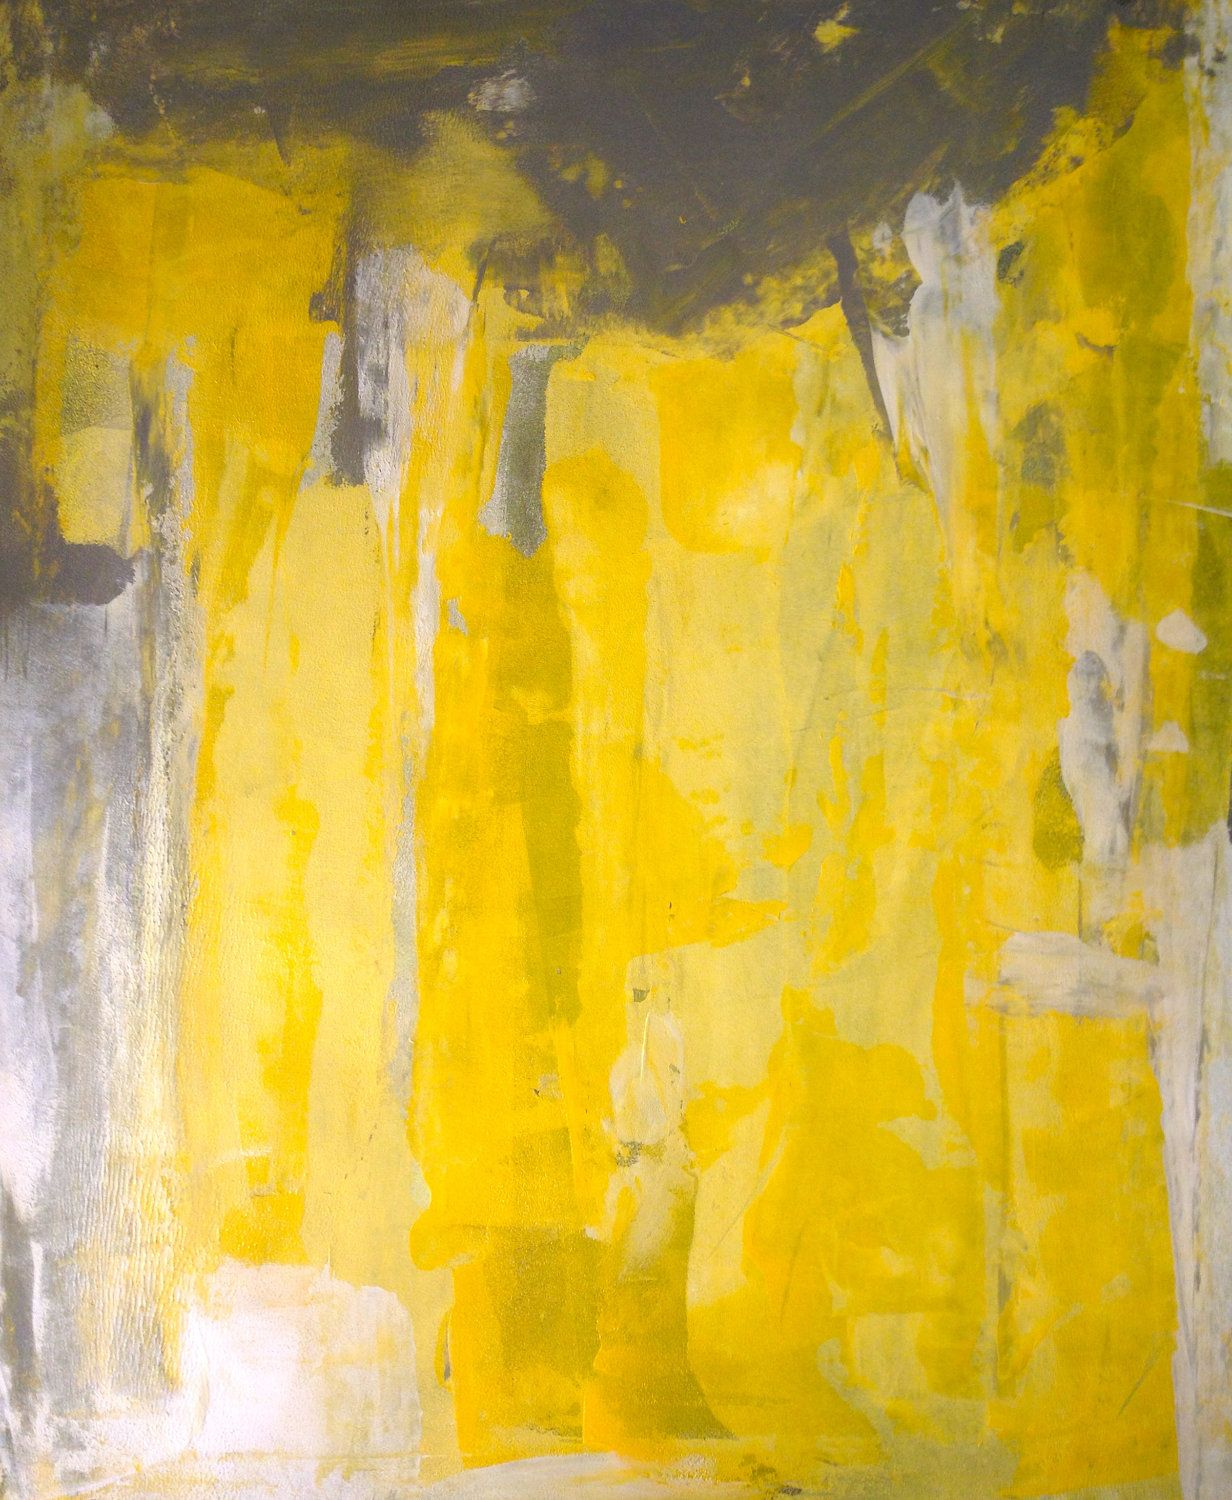 Abstract Painting How To Acrylic Abstract Art Painting Grey Yellow And White Modern